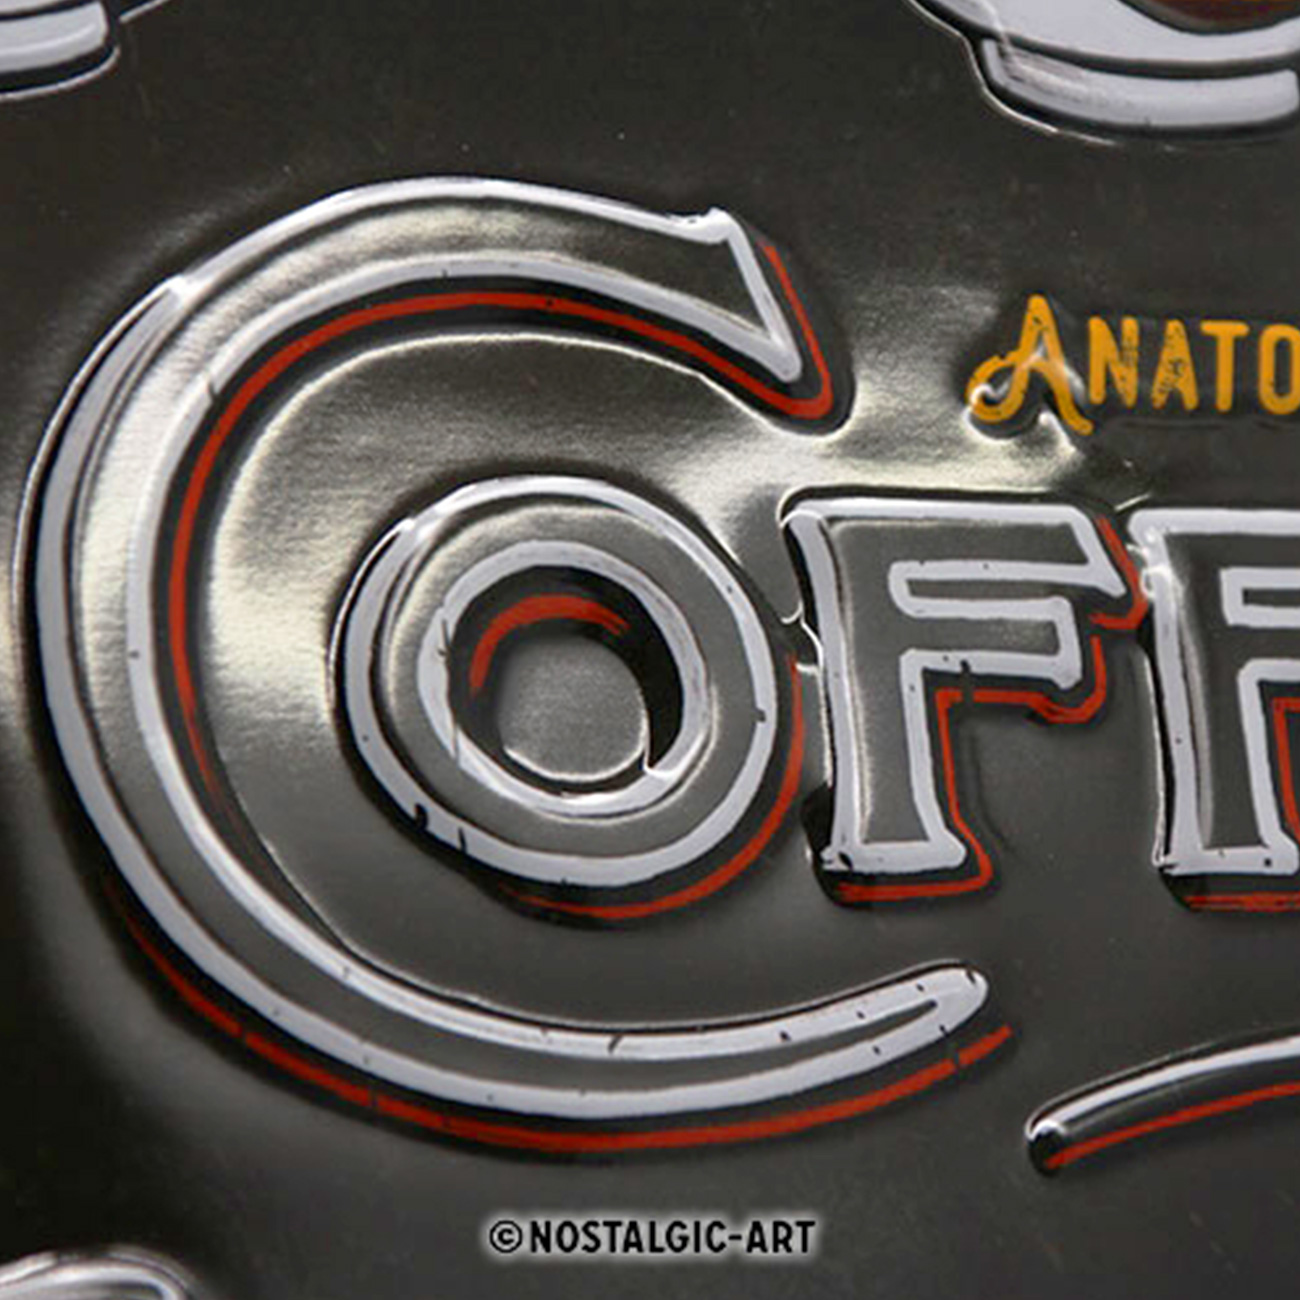 Nostalgic Art Blechschild Anatomy of Coffee 1